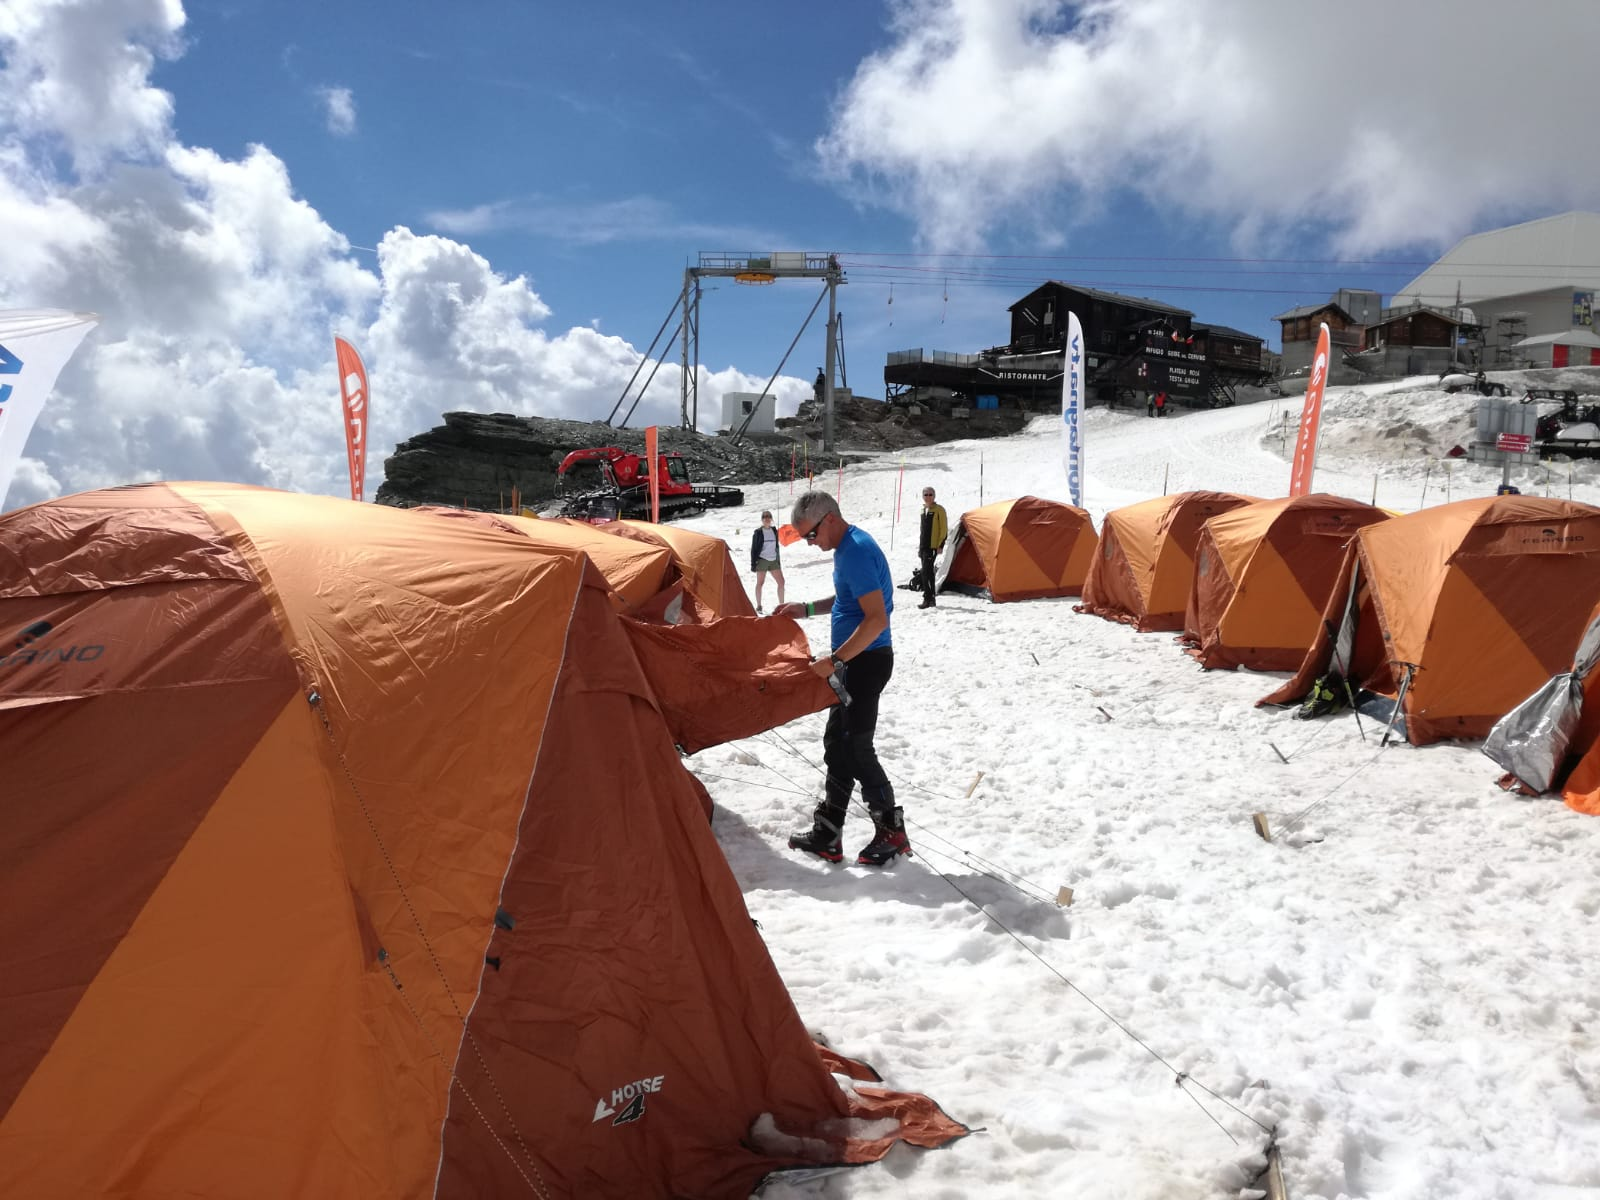 Outdoor, Cervinia, Campo base